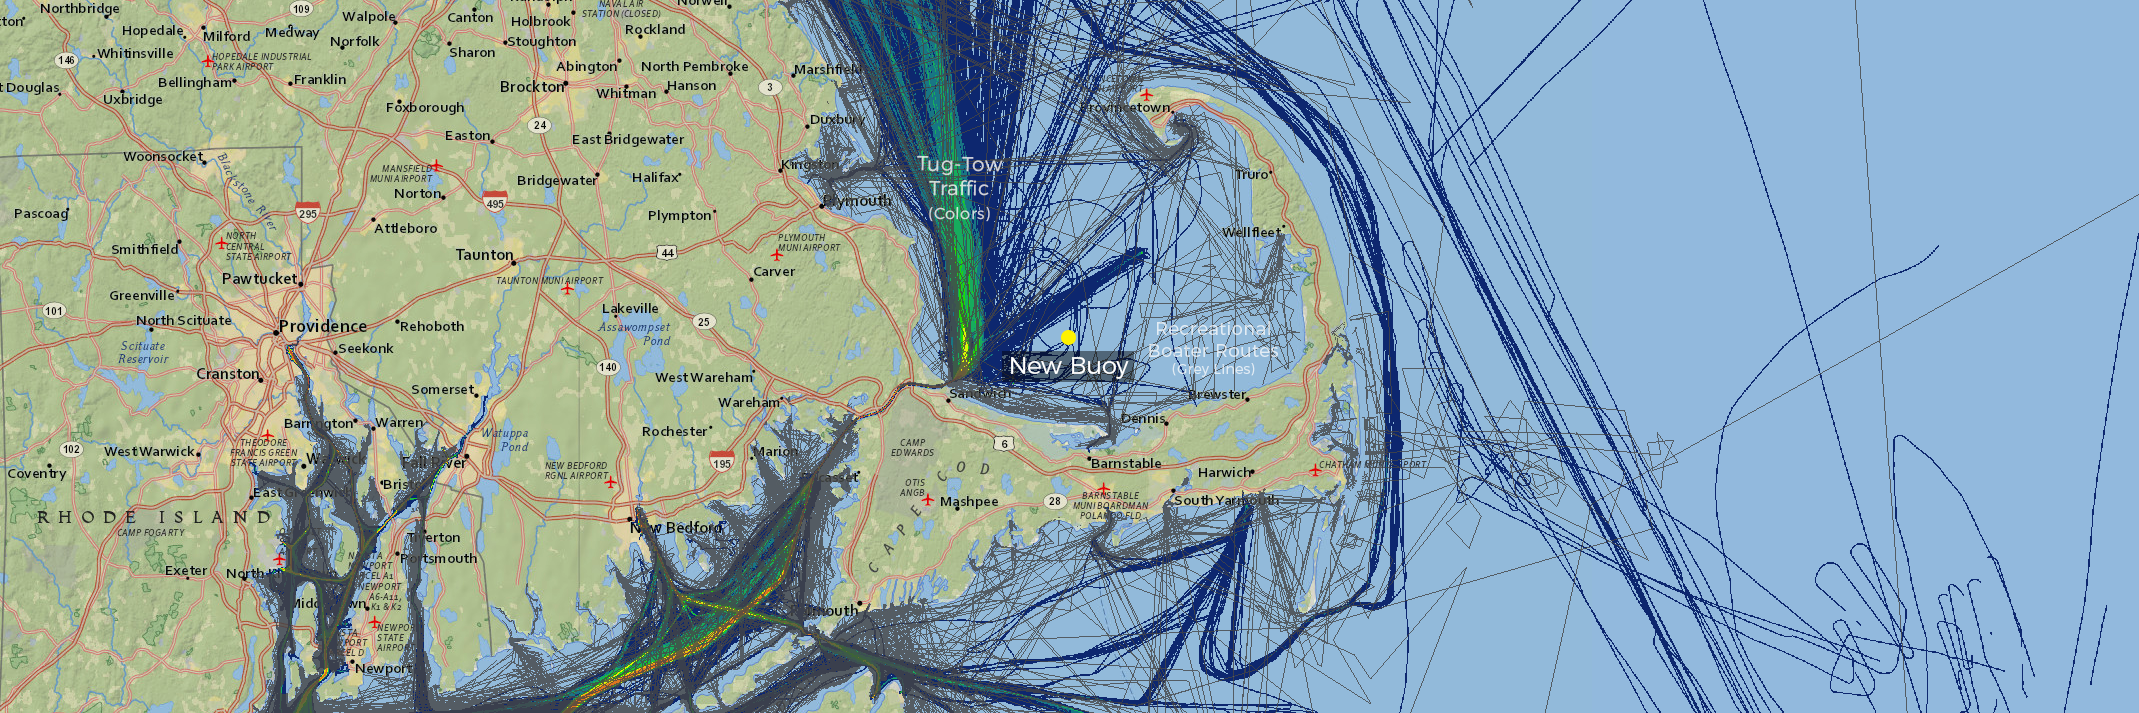 Screenshot of Northeast Ocean Data interactive map showing new buoy location with tug-tow traffic (colors) and recreational boater routes (grey lines).